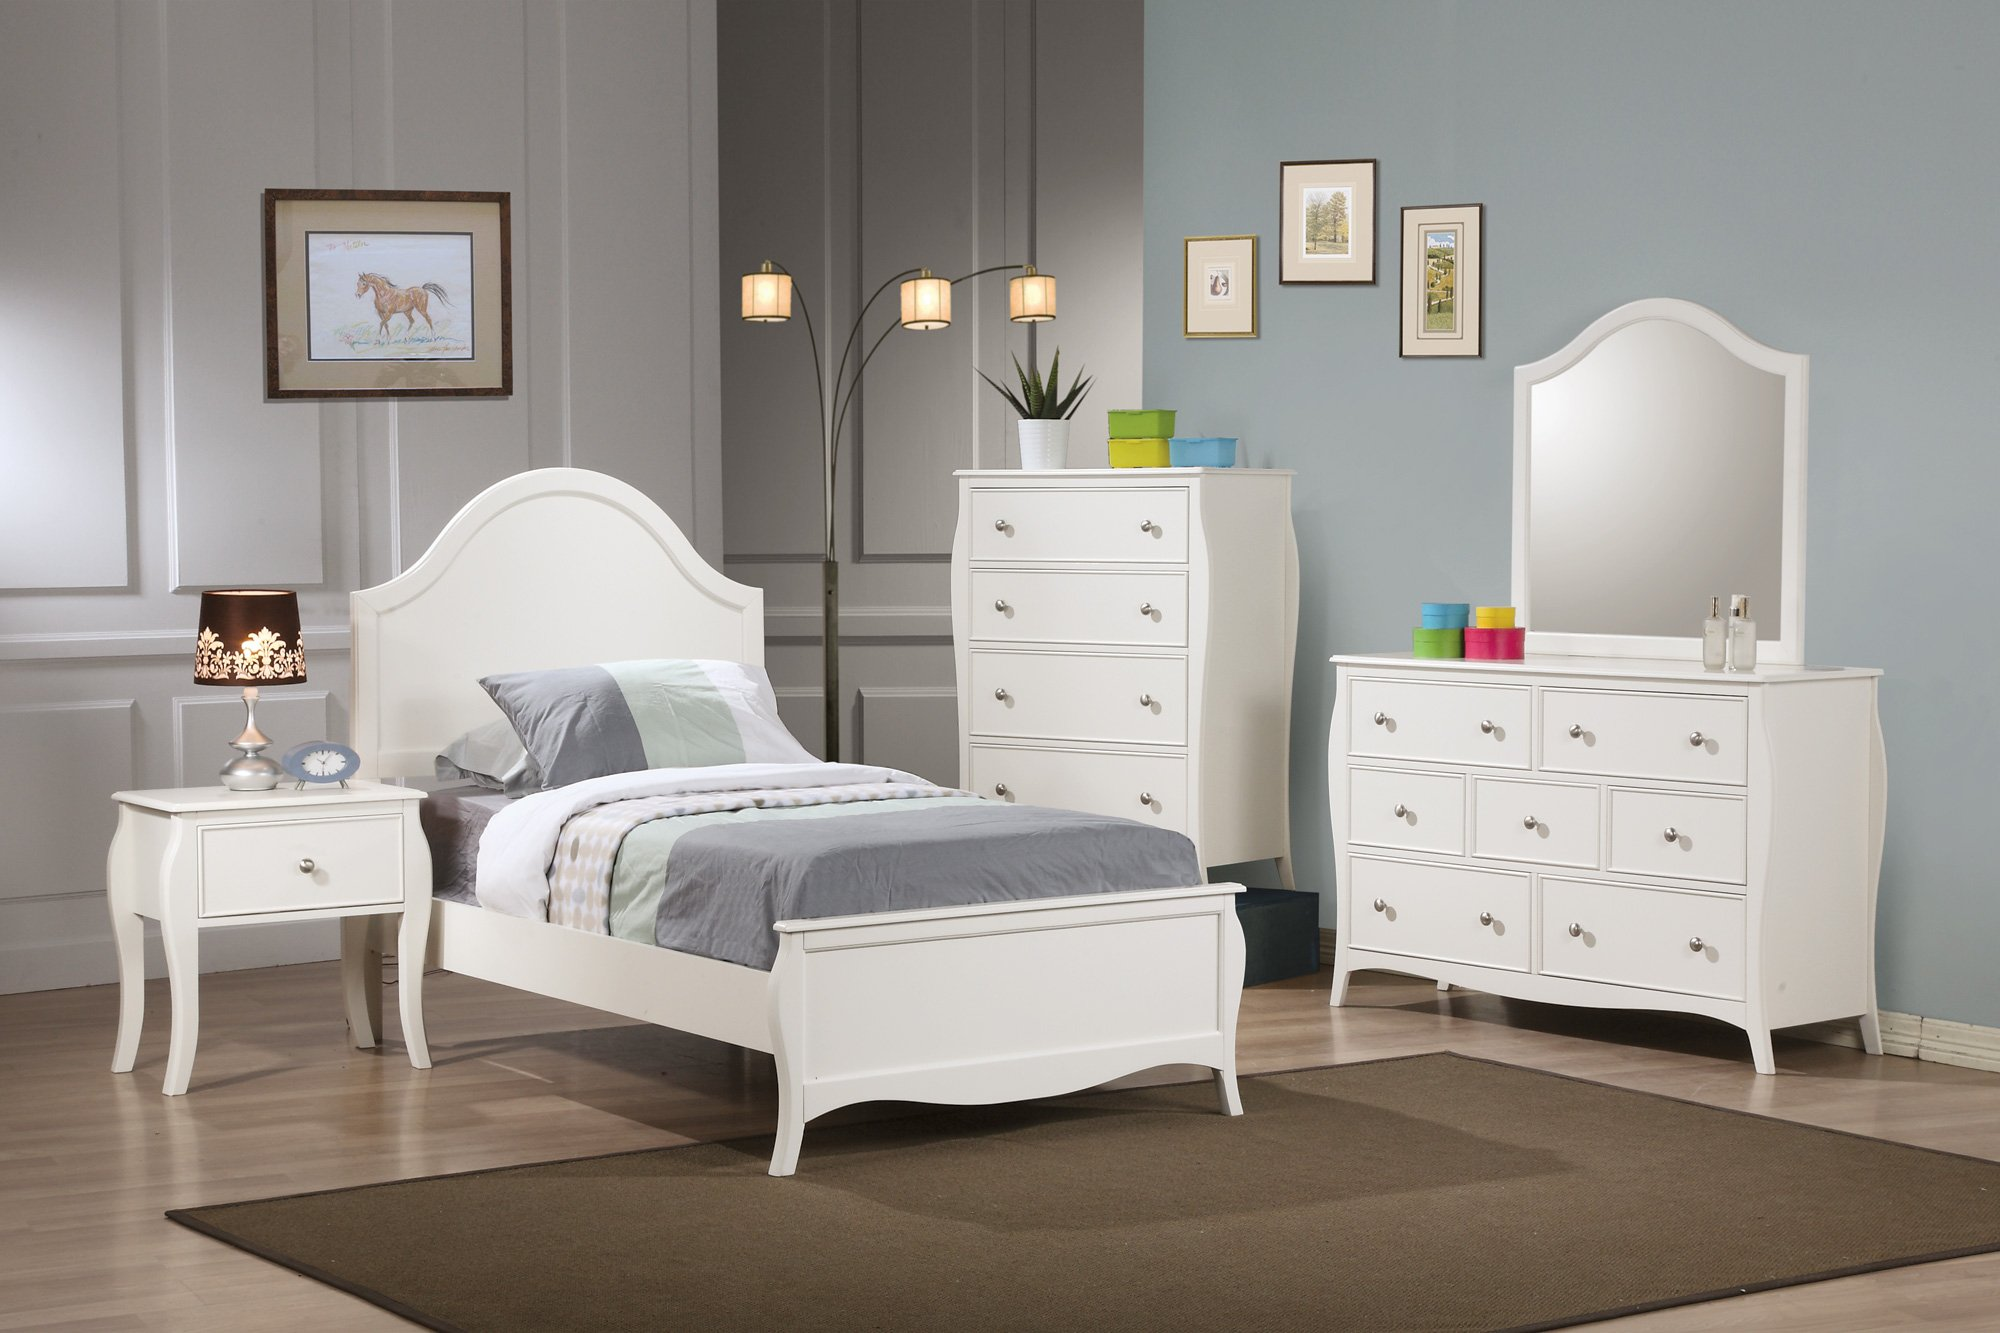 Coaster Pepper 4 Piece Full Panel Bedroom Set in White